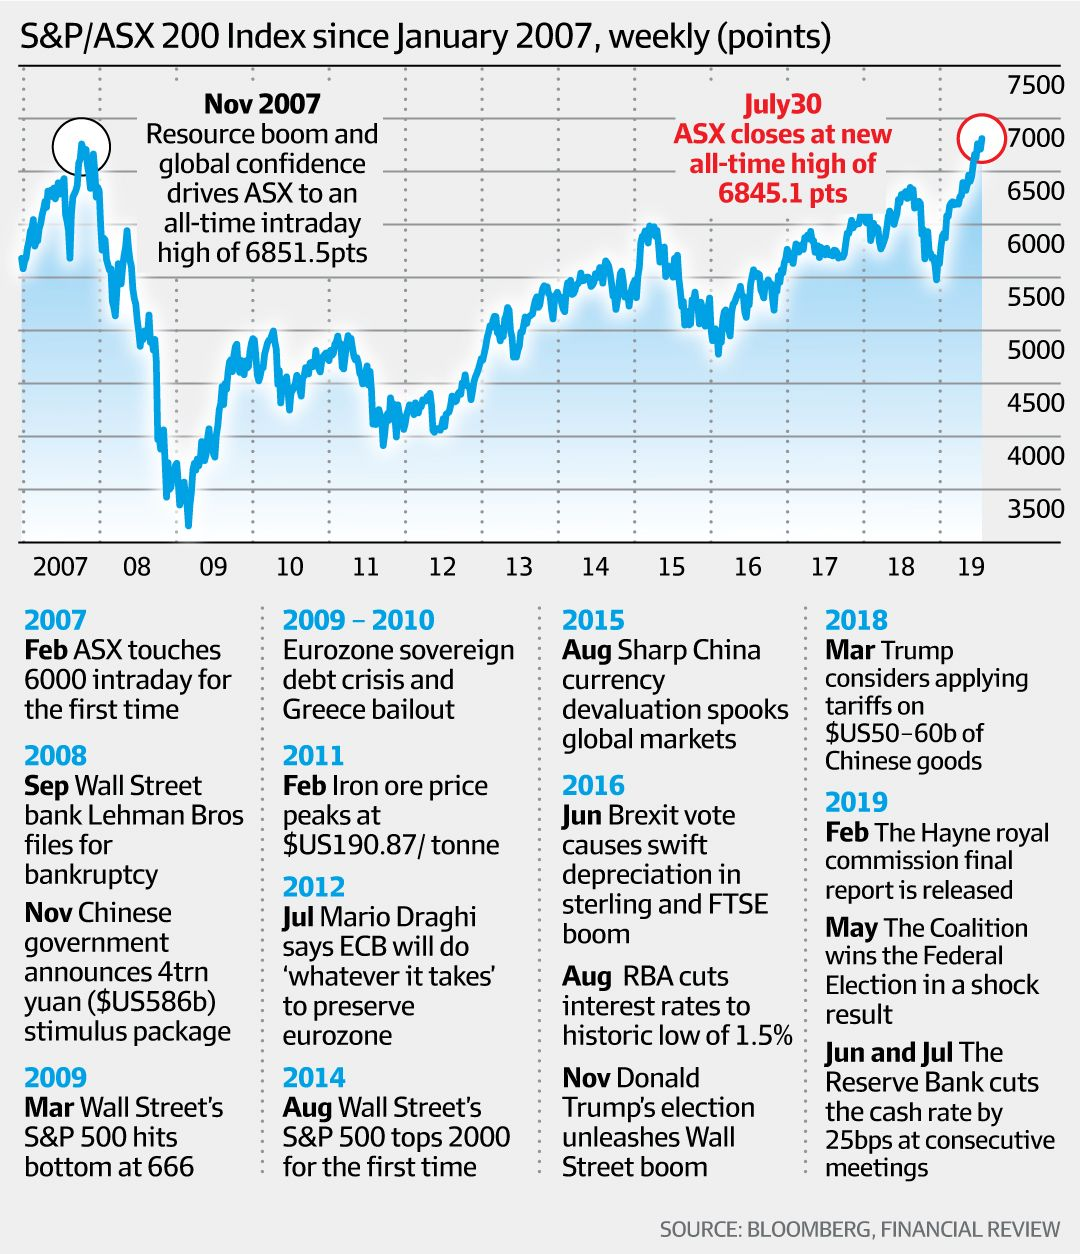 S&P/ASX200 Index since January 2007 (Bloomberg, Financial Review)